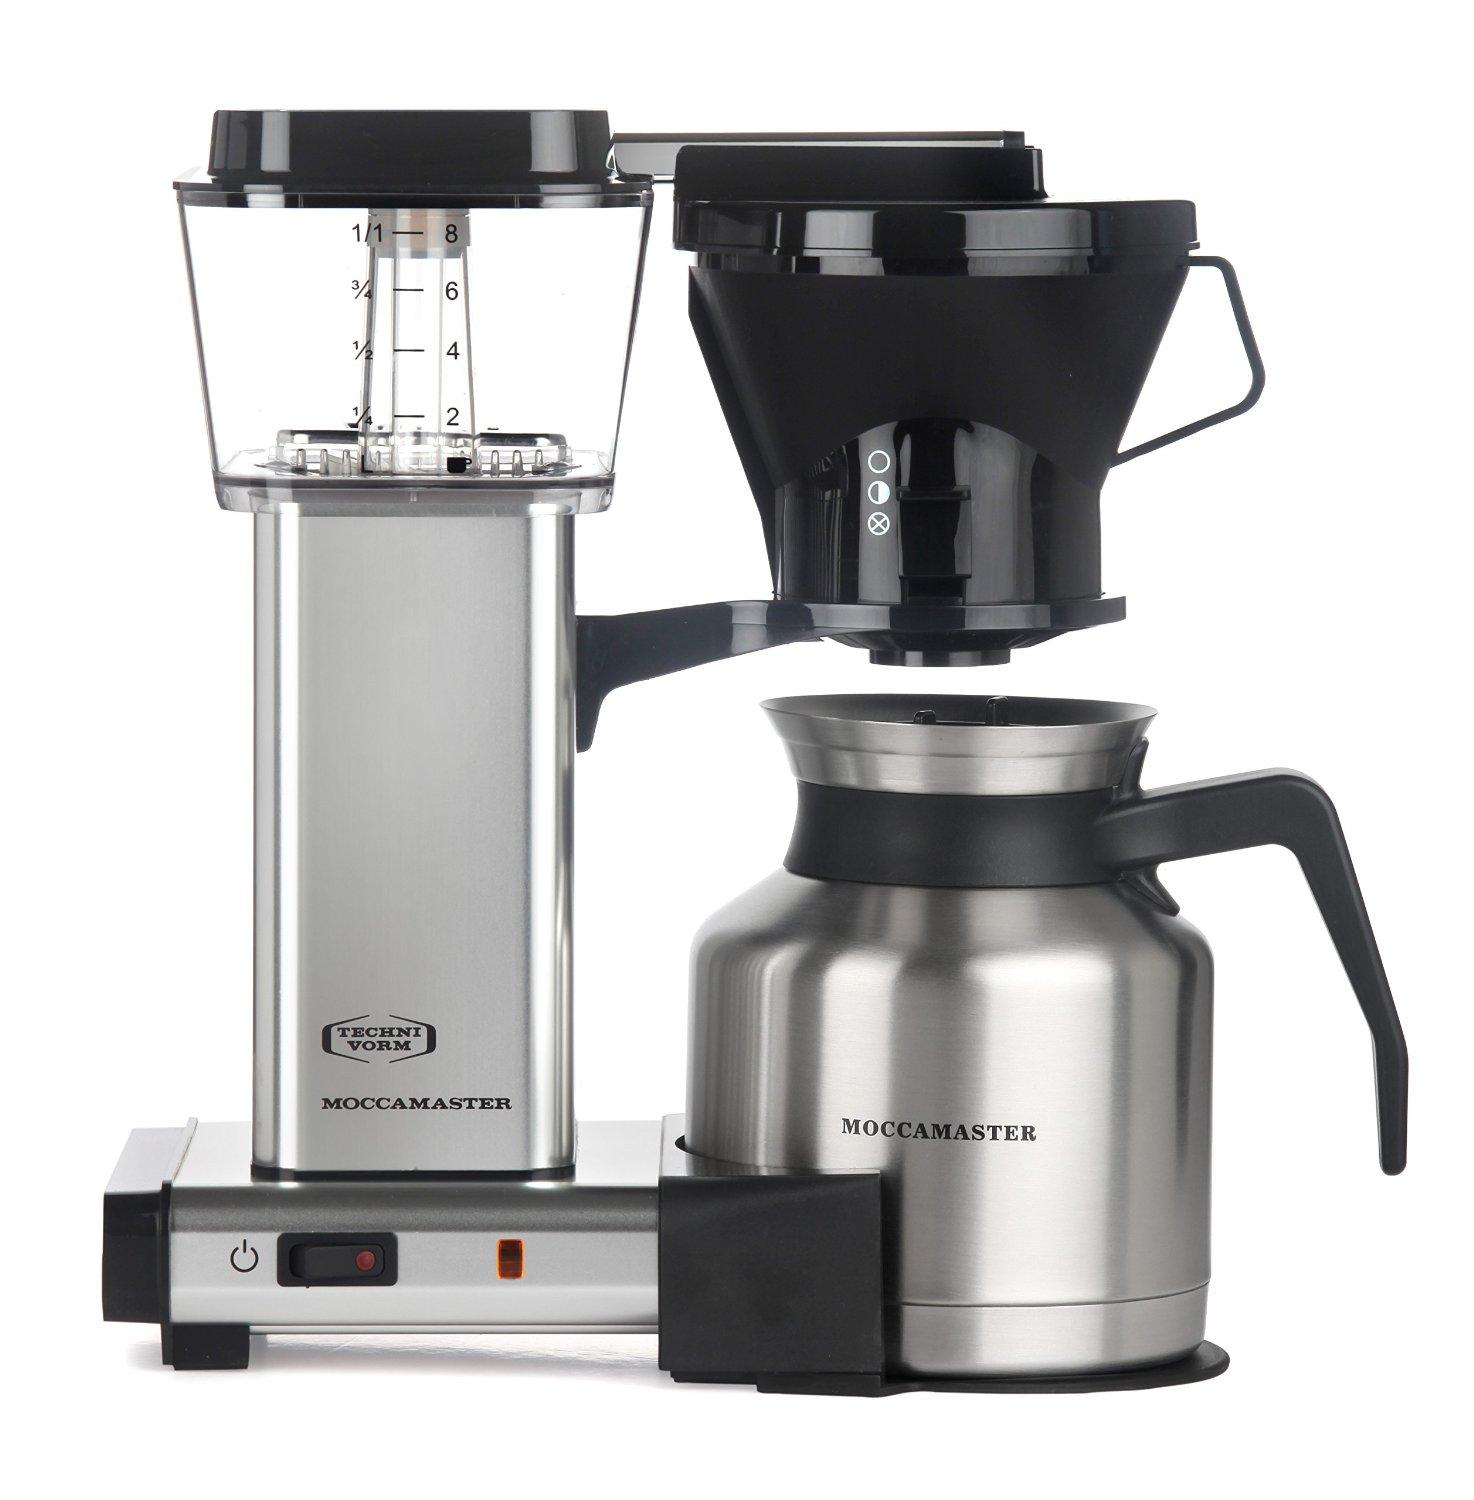 Amazon.com: Moccamaster 79212 KBTS 8-Cup Coffee Brewer with Thermal Carafe, Polished Silver ...